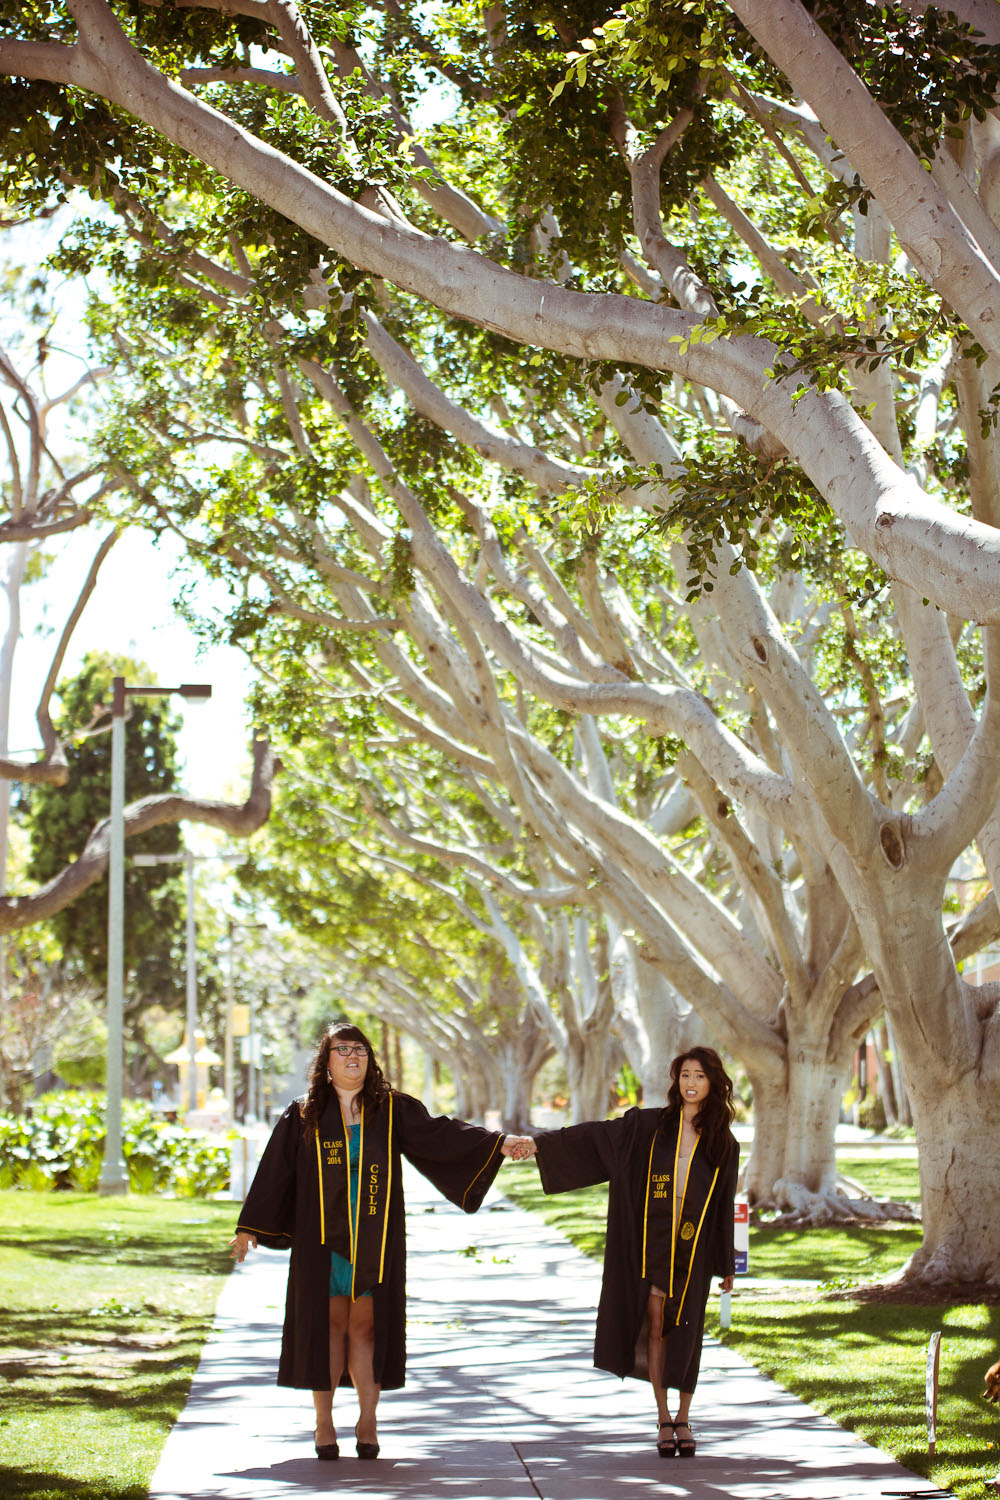 Bryan-Miraflor-Photography-Grad-Portraits-Lim-Chow-Group-20140330-0014.jpg